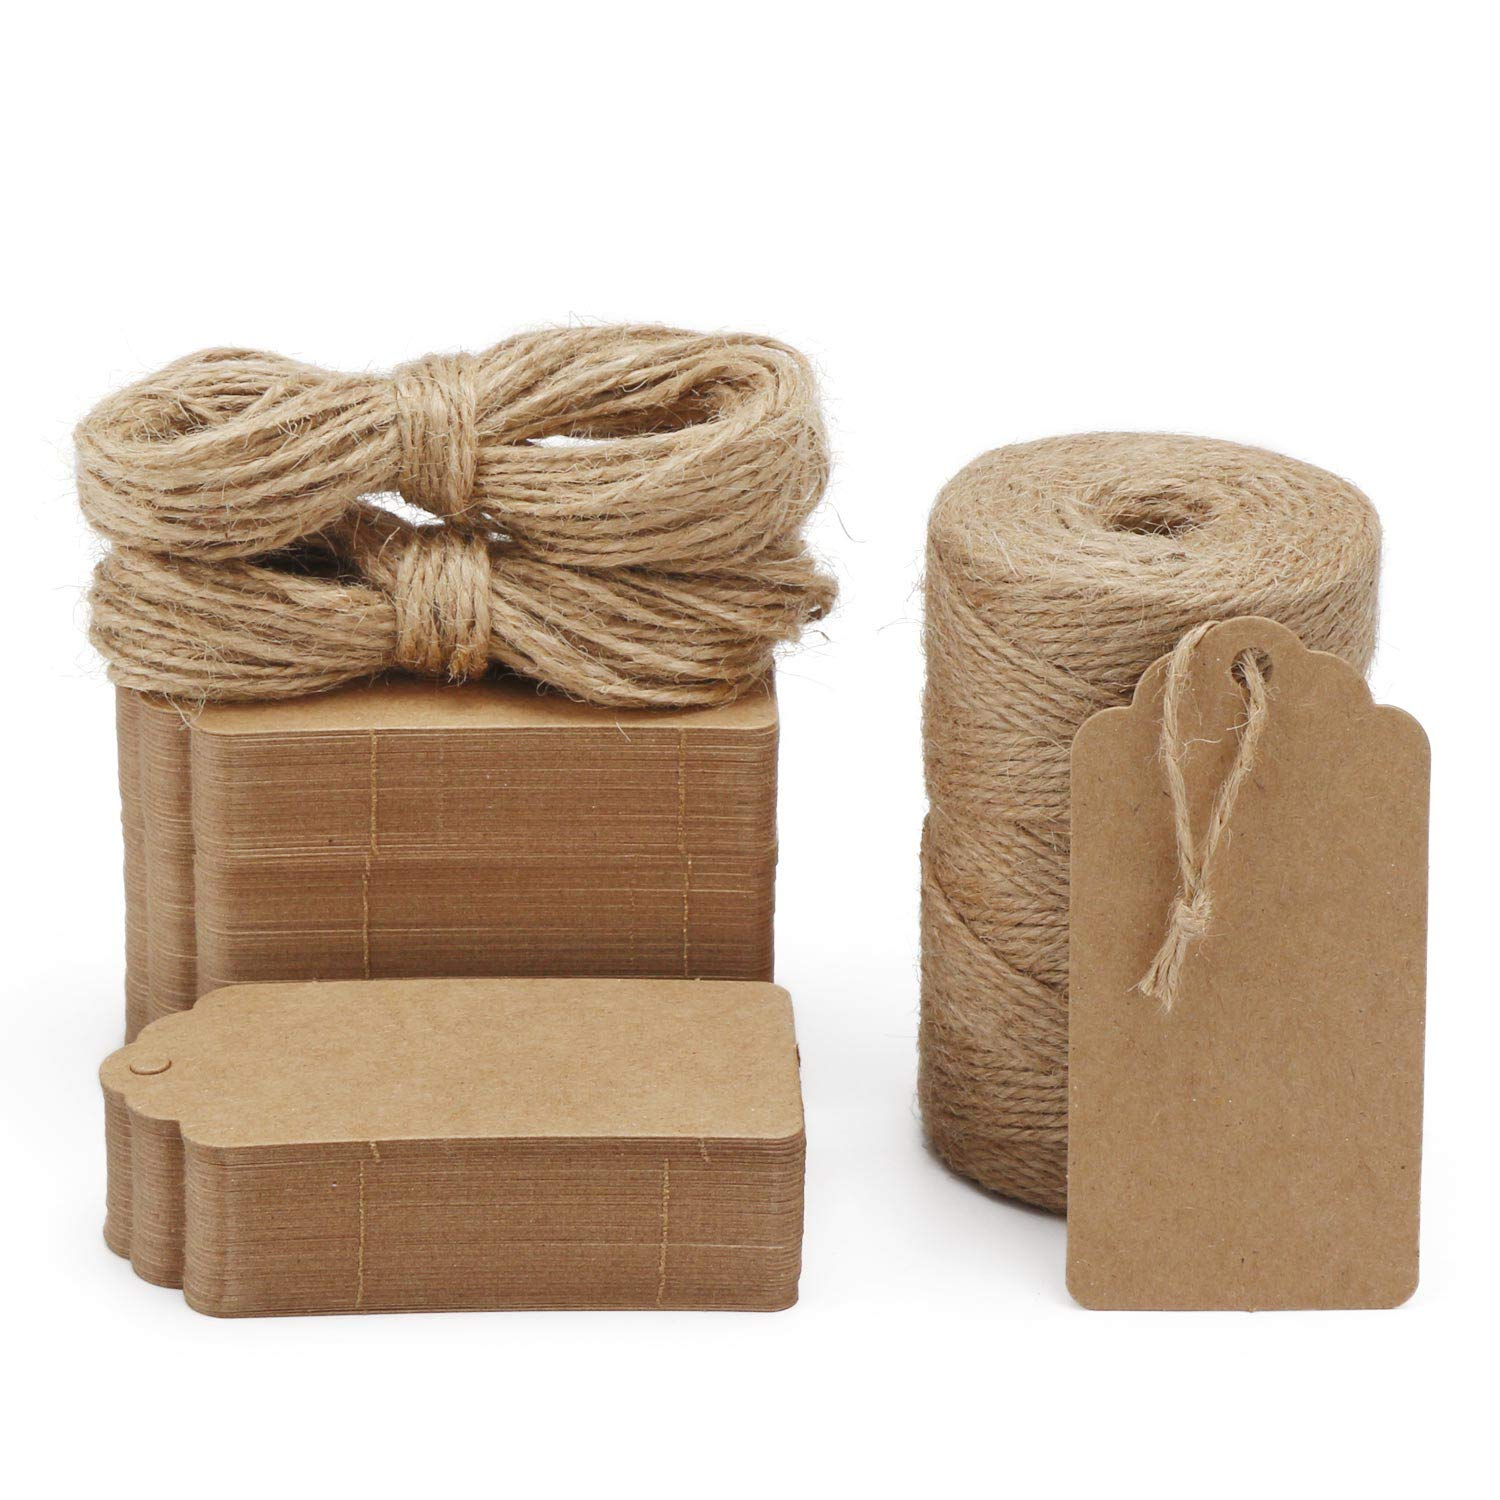 Gift Tags, 200PCS Segarty Kraft Paper Tags Brown Rectangle Craft Hang Tags with Free 393 Feet Natural Jute Twine for Christmas Wedding Birthday Thanksgiving Gift Ideas by Segarty